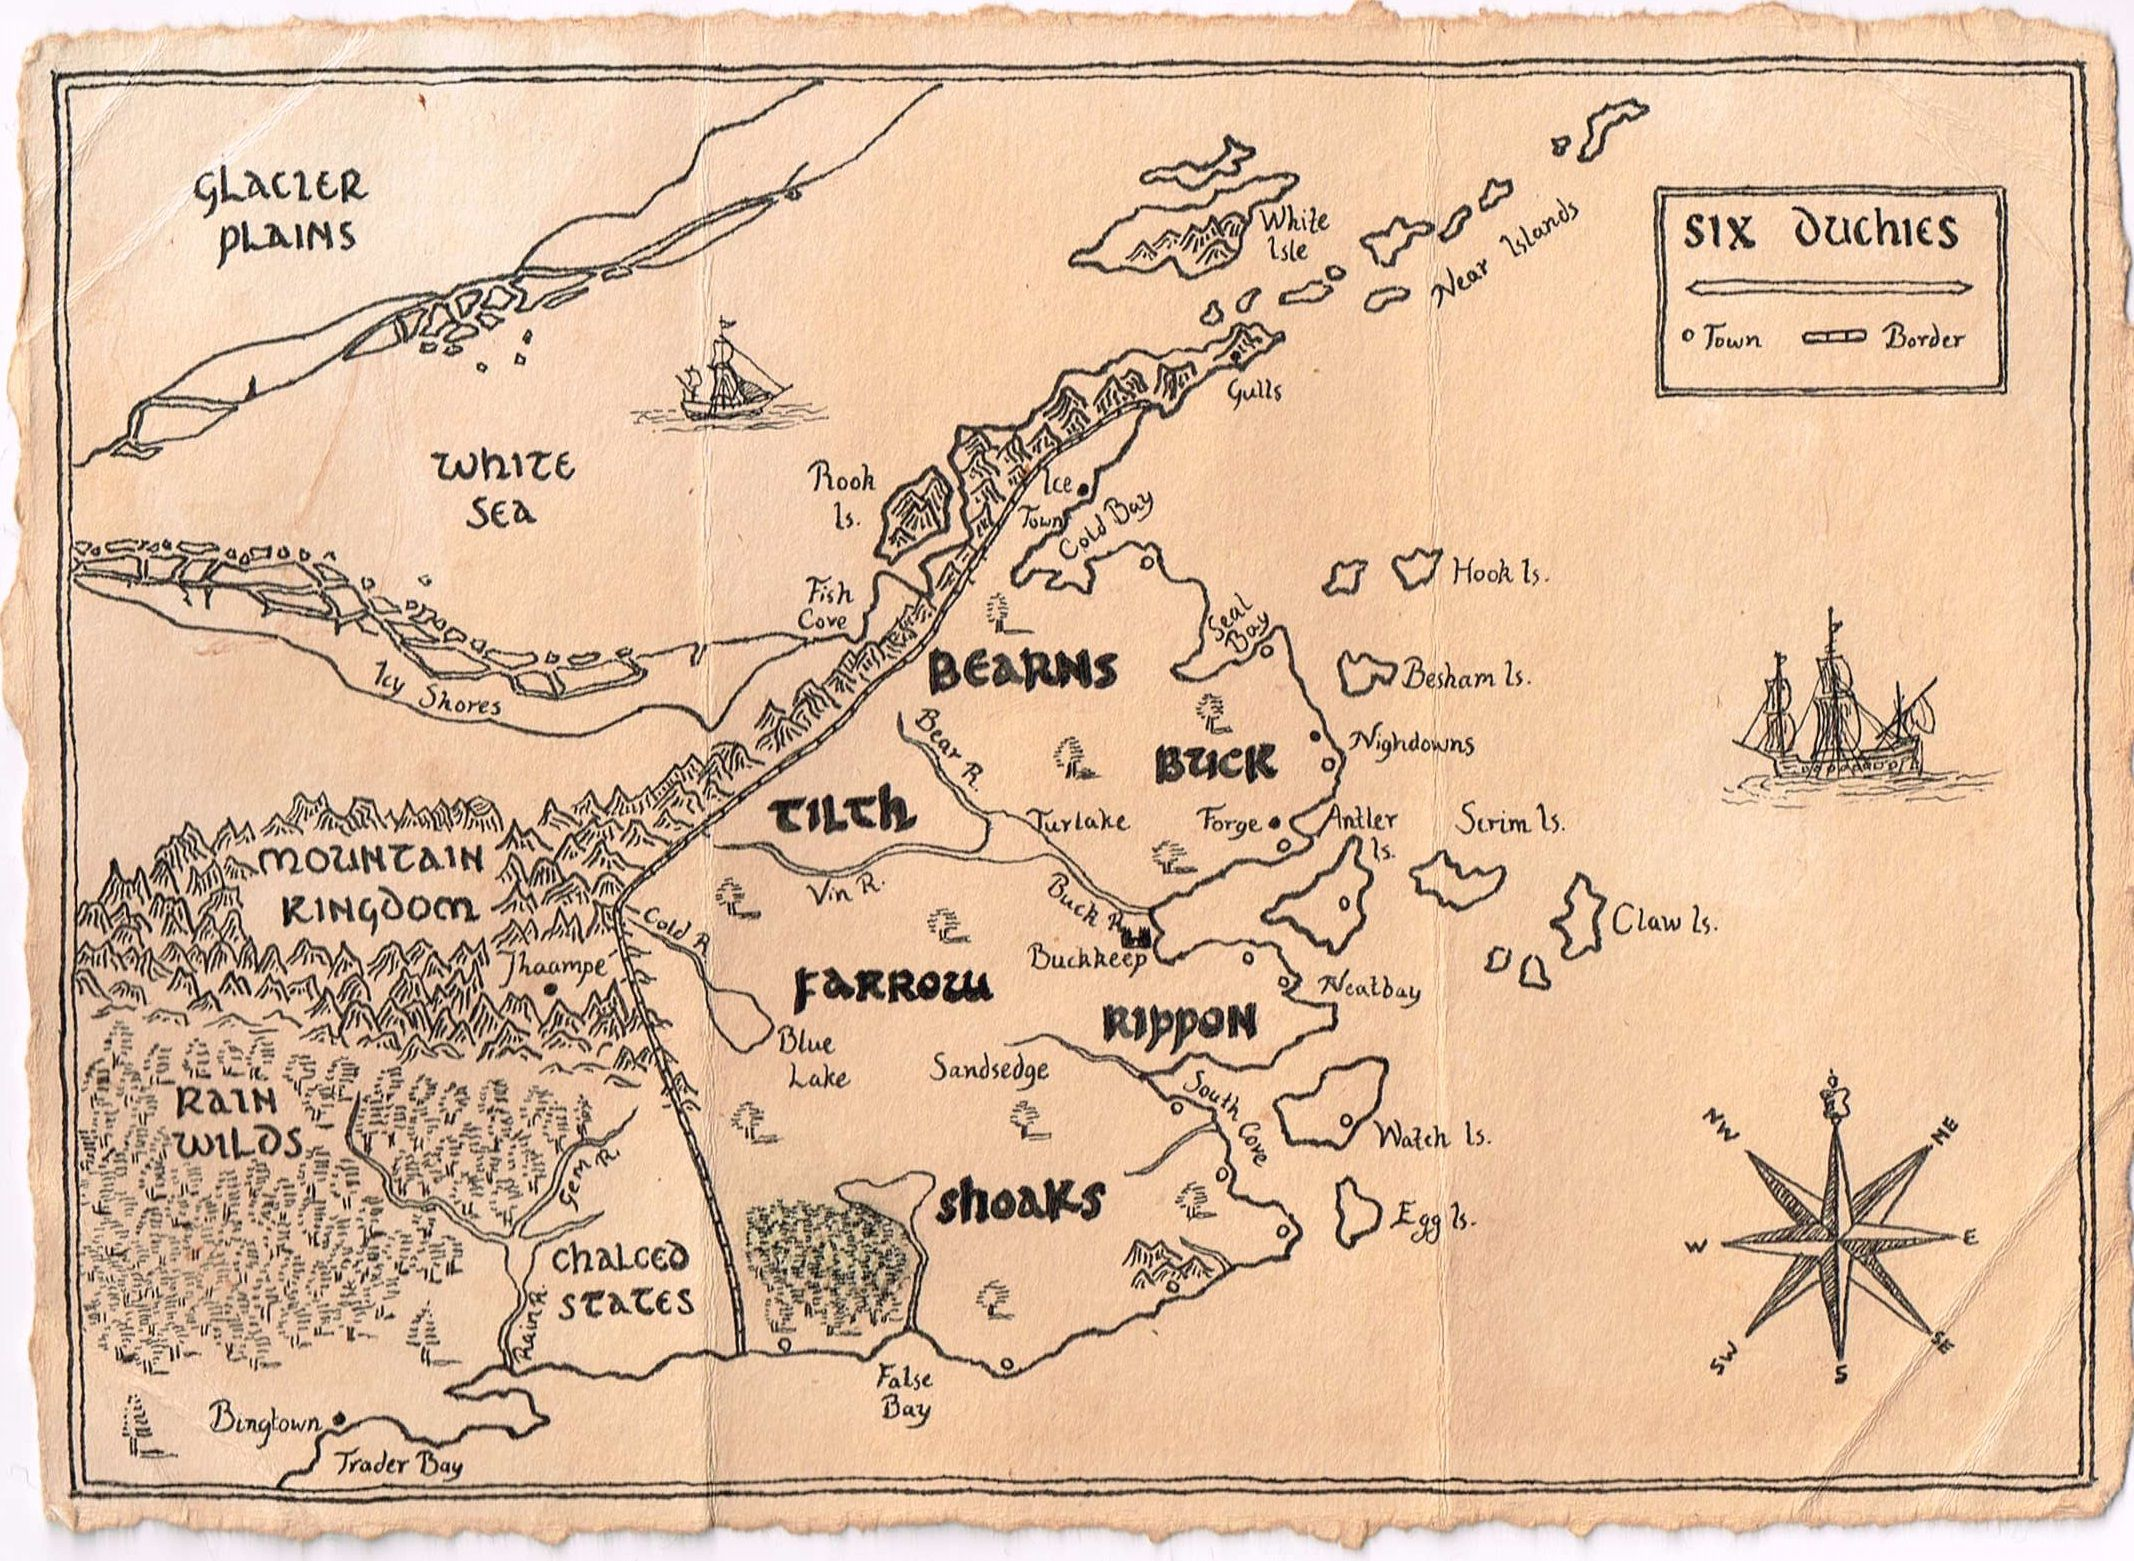 A Map Of The Six Duchies, From The Farseer Trilogy By Robin Hobb It's